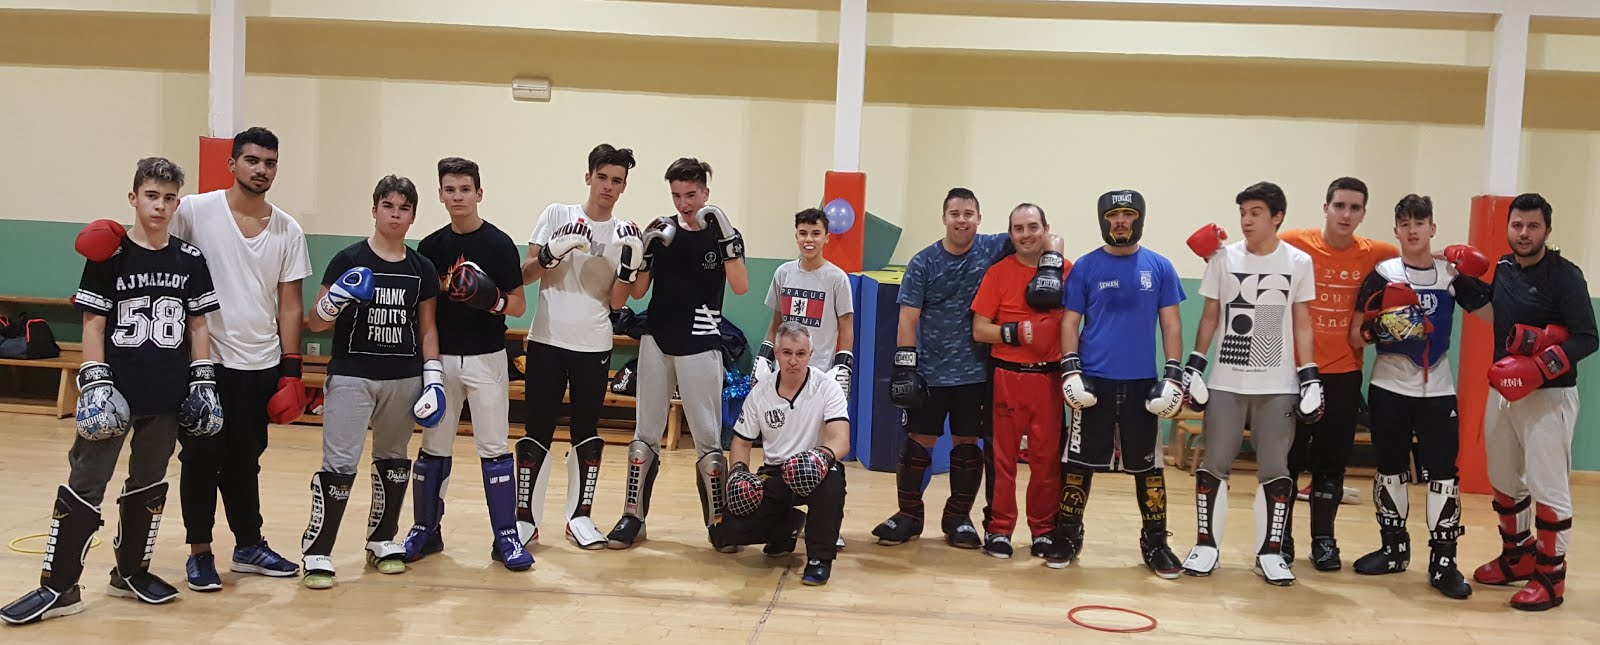 Temporada 2017/18 Kick Boxing